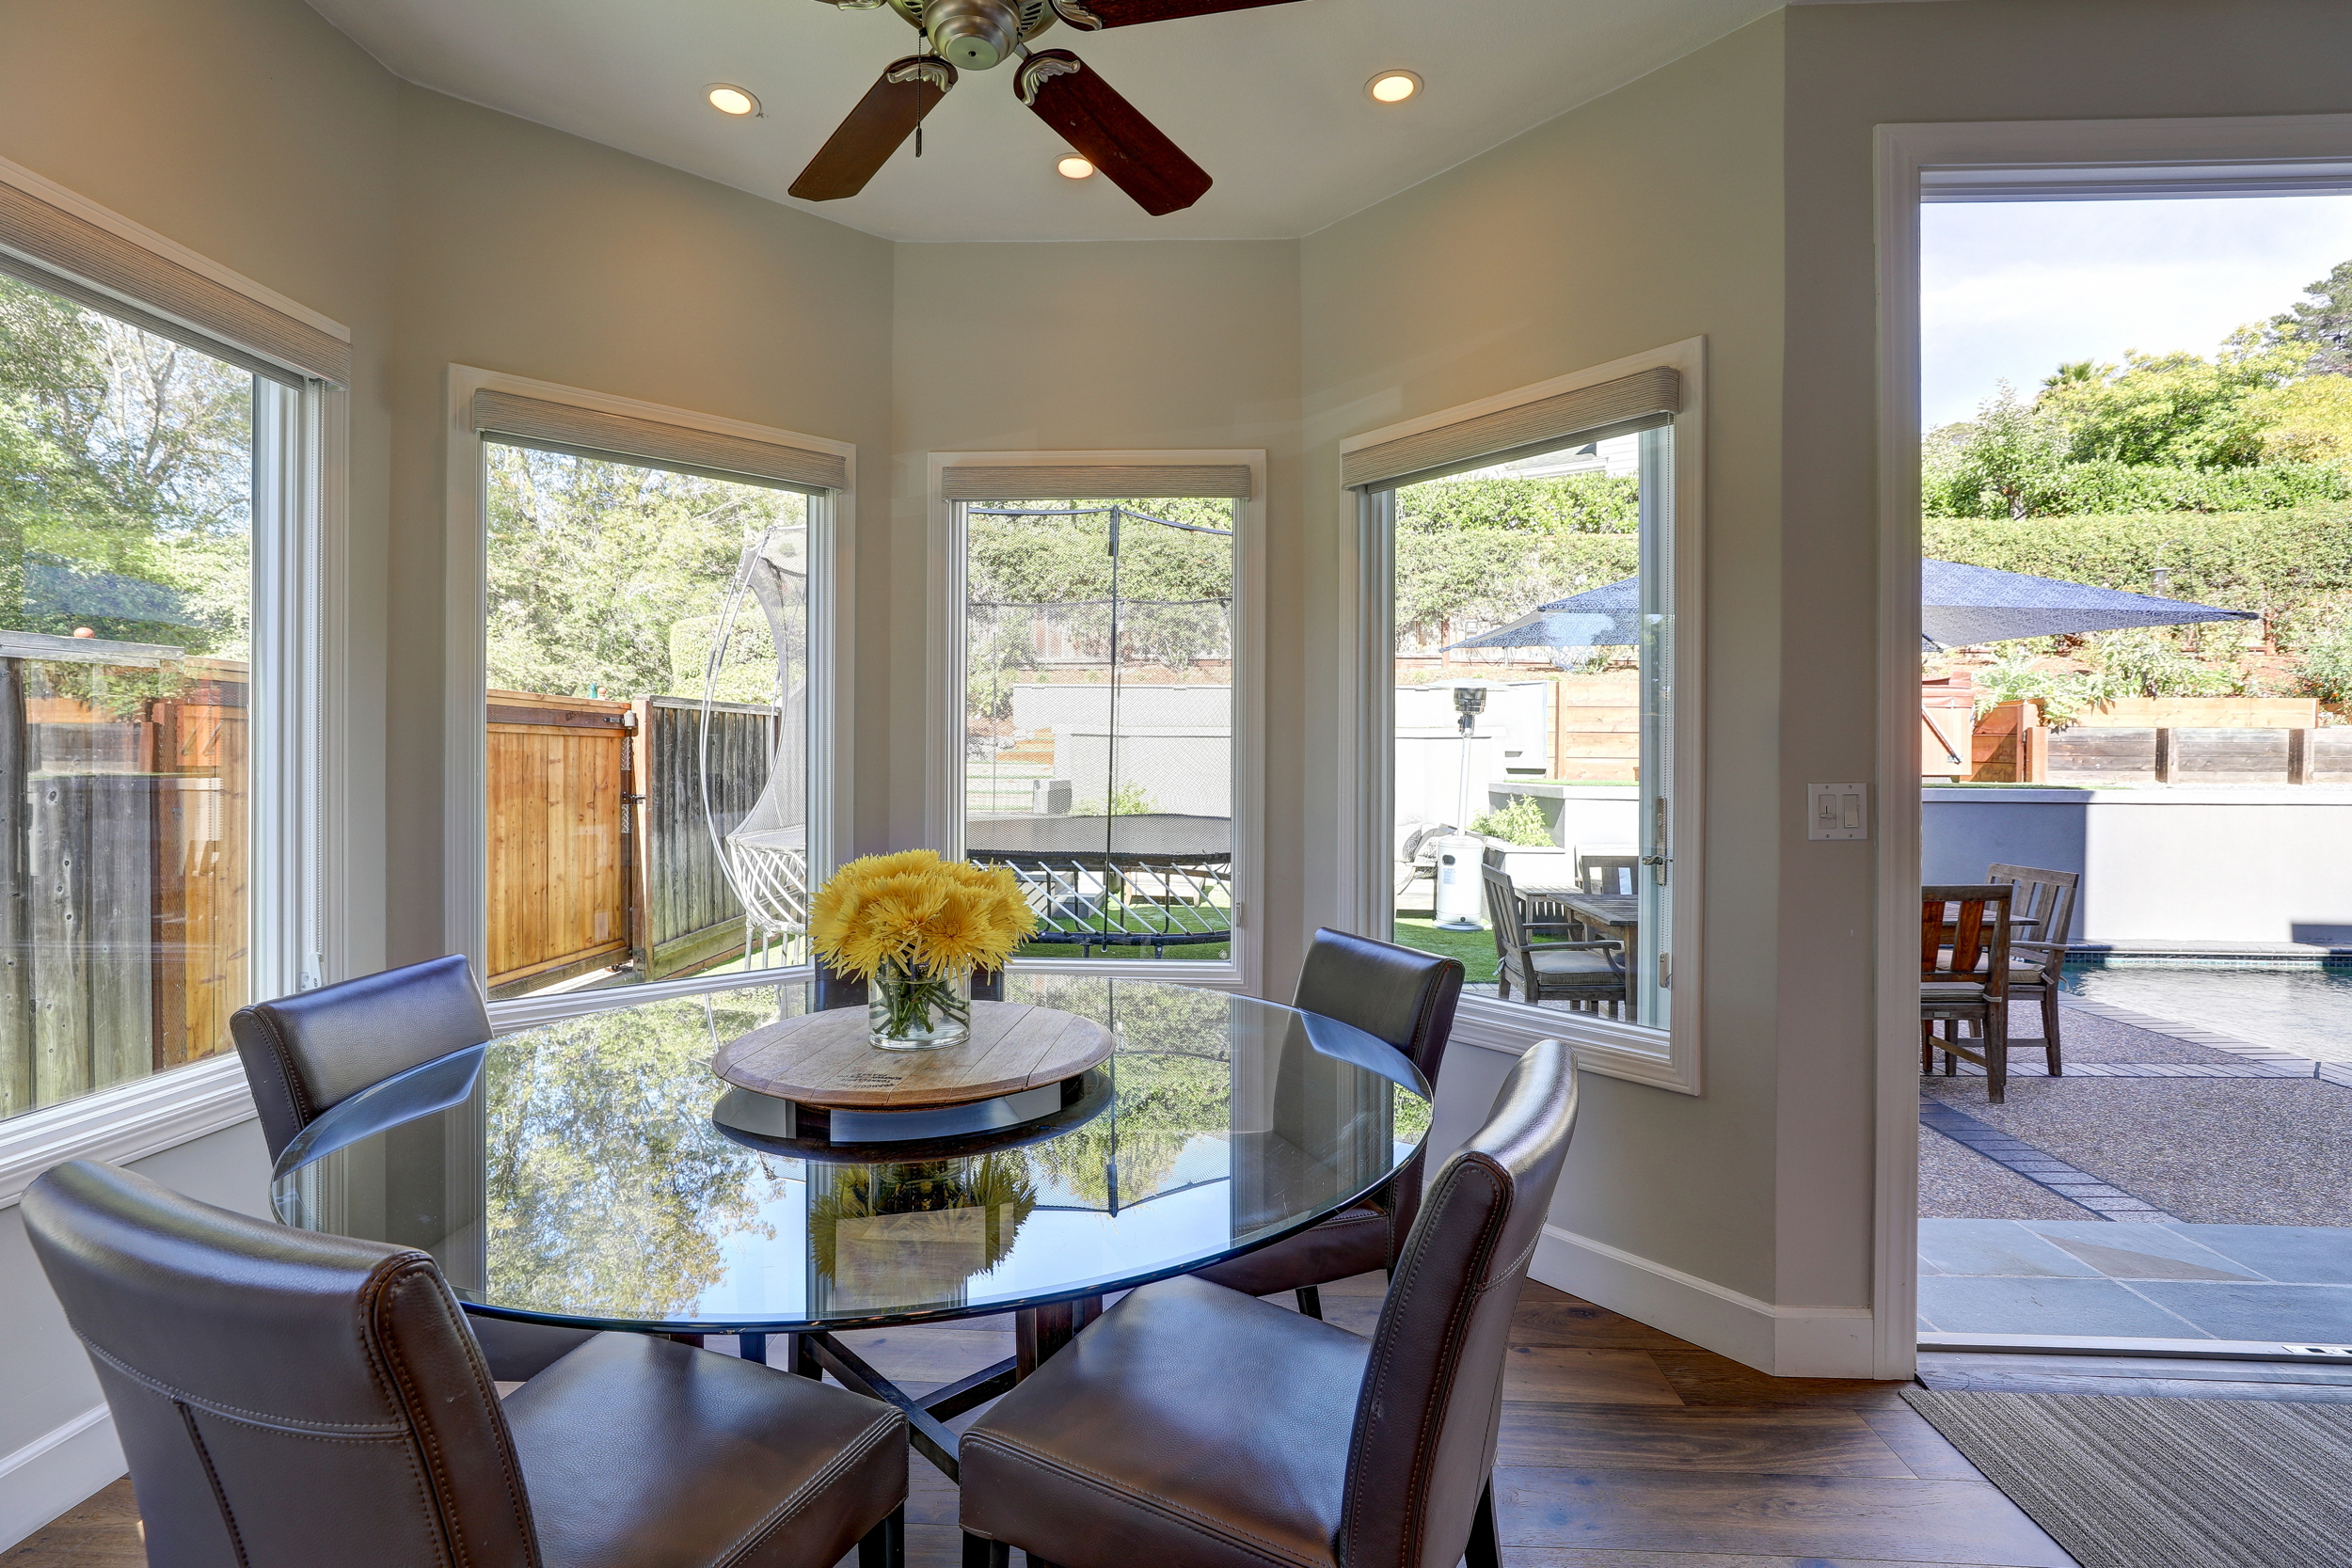 8Parkside 39 - Own Marin with Compass - Marin County Best Realtor.jpg